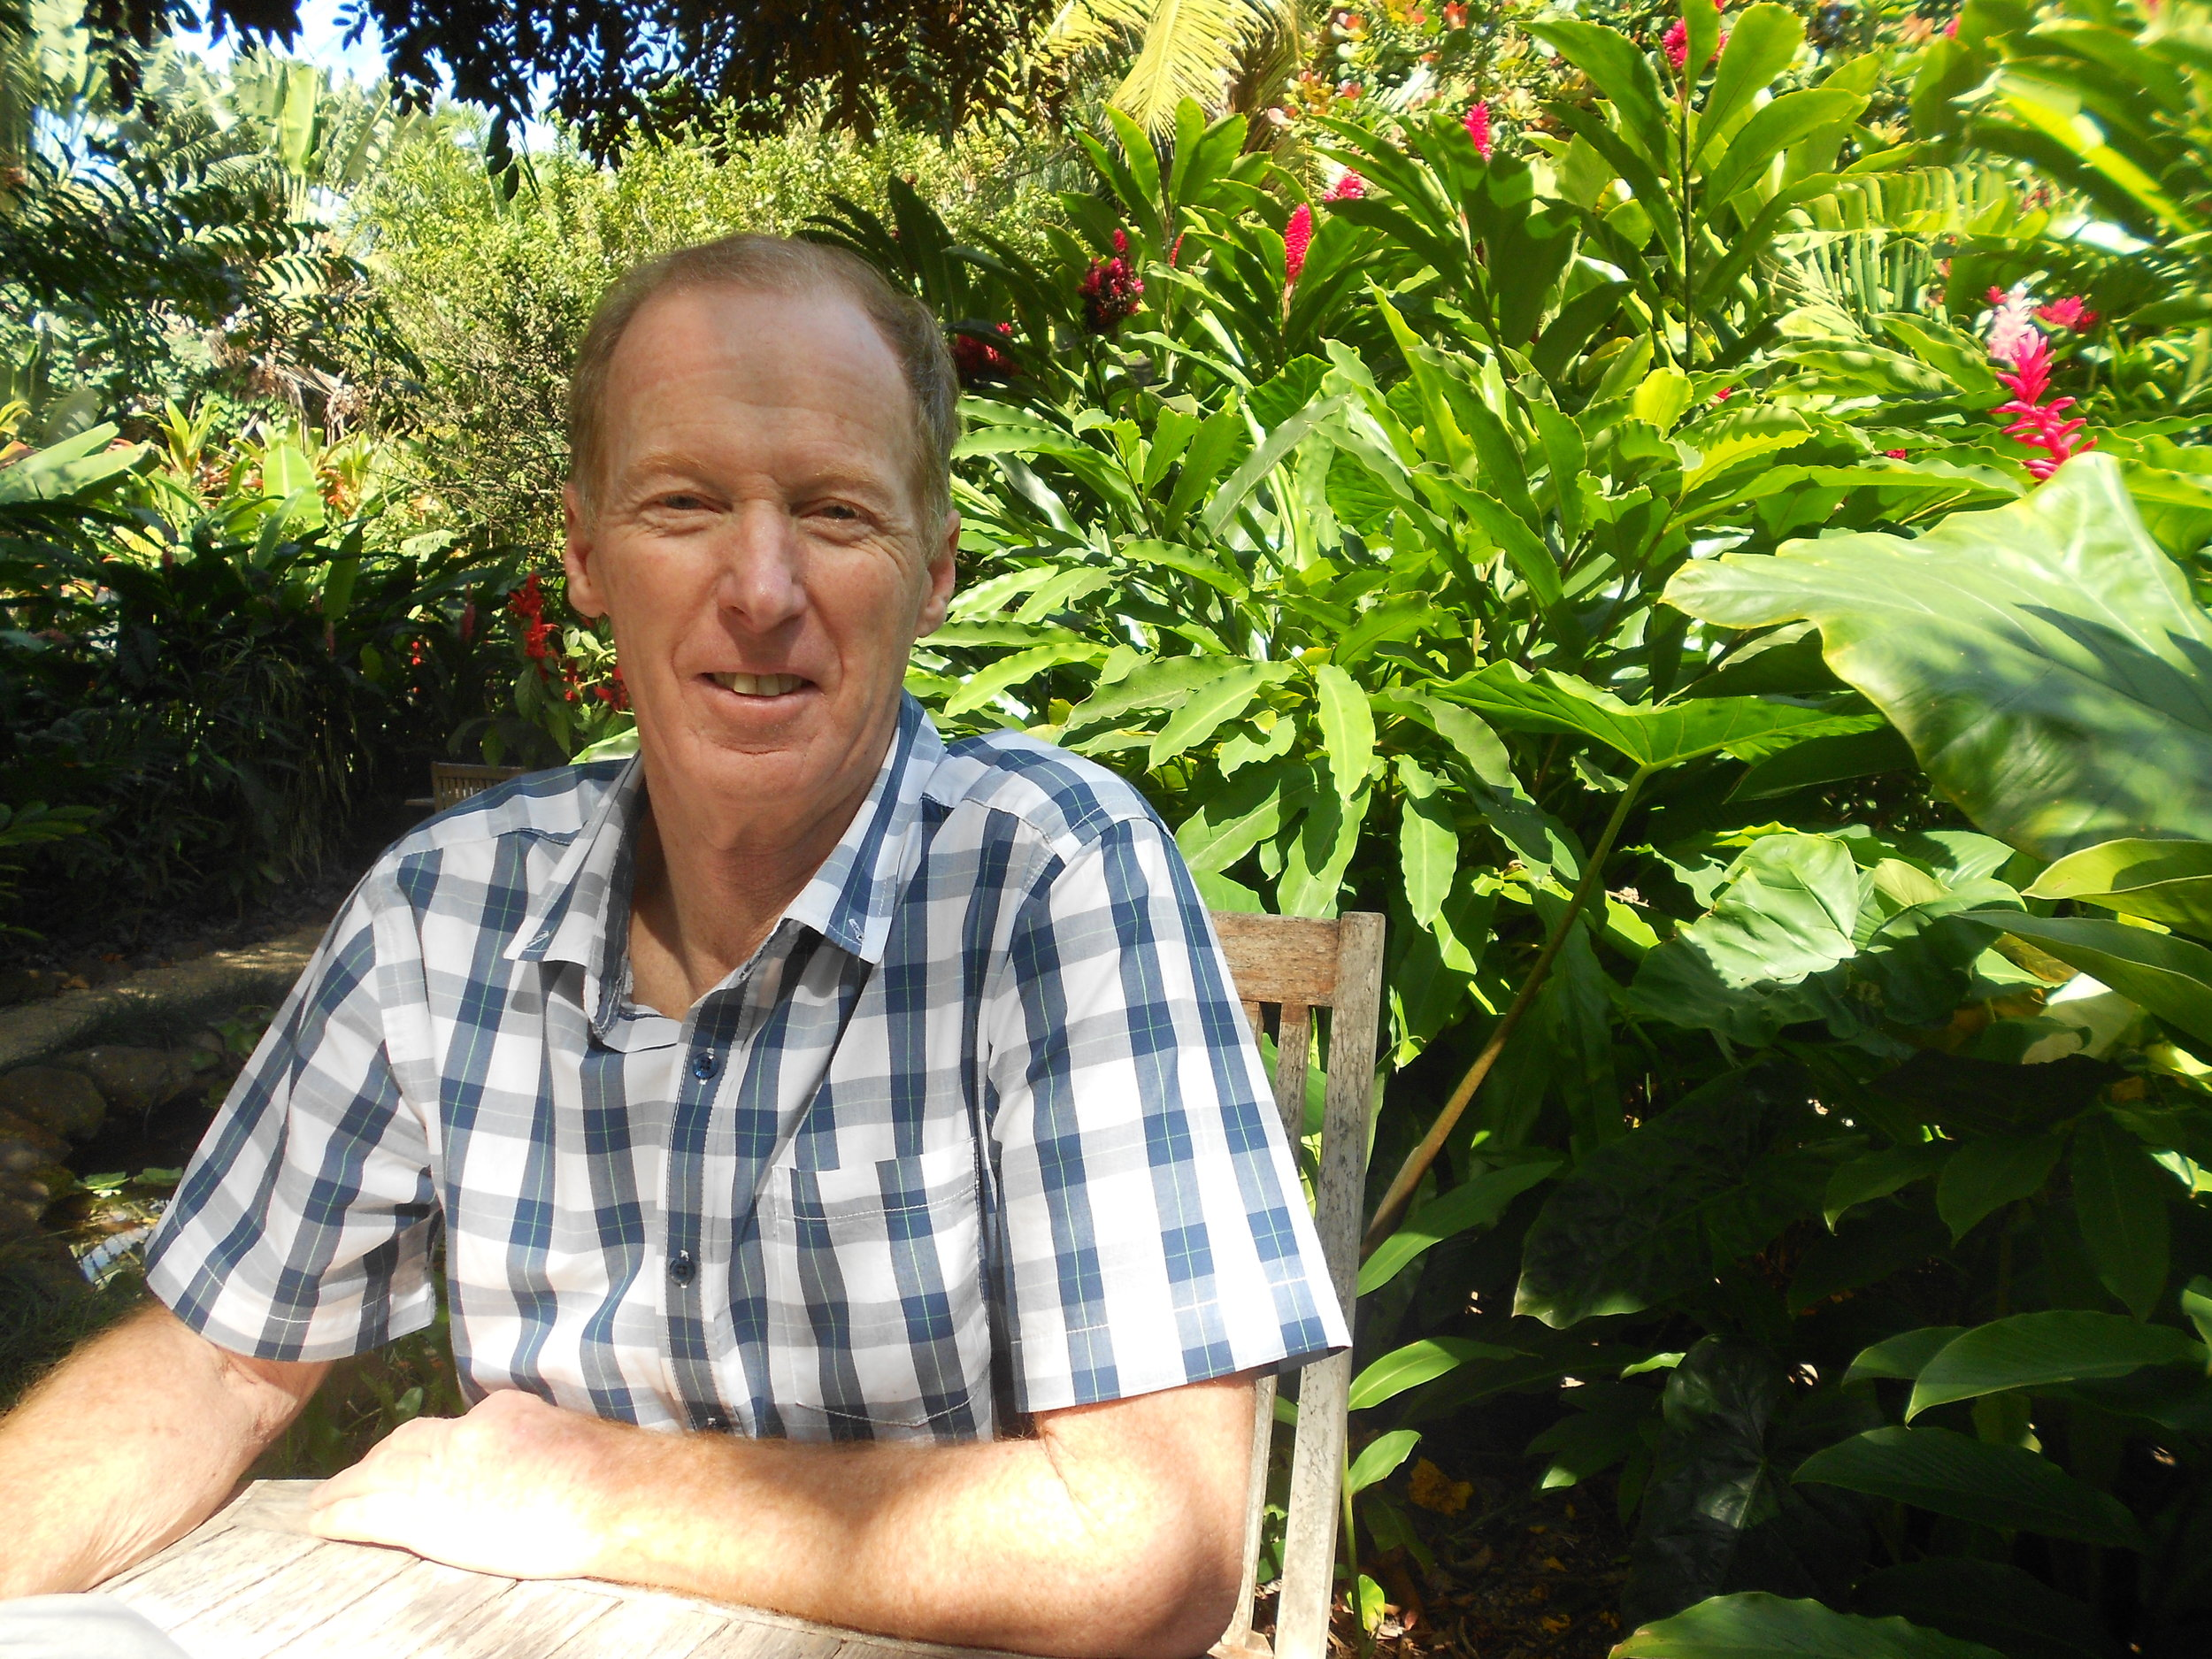 BOB WITHAM - Bob is our class president. Bob's sailing career started in Wellington in 1962 and he has sailed every season since. He began in a planked gaff-rigged P class with a cotton sail,continued in Z class, OK Dinghy, FF, FD briefly, Sunburst and Noelex 22 before buying Noelex 25 Elderberry Wine in 2003. He has raced Elderberry Wine in every Noelex 25 Nationals since 2004 and at Napier Sailing Club on a regular basis over the same period.During his time in the class he has met and competed with many Noelex 25 sailors and greatly enjoyed racing and meeting them in Rotorua, Rotoiti, Taupo, Napier, Wellington, Nelson, Christchurch, Timaru and Dunedin.Bob has been a class measurer for several classes including the Noelex 25, and has been the class president since 2009.